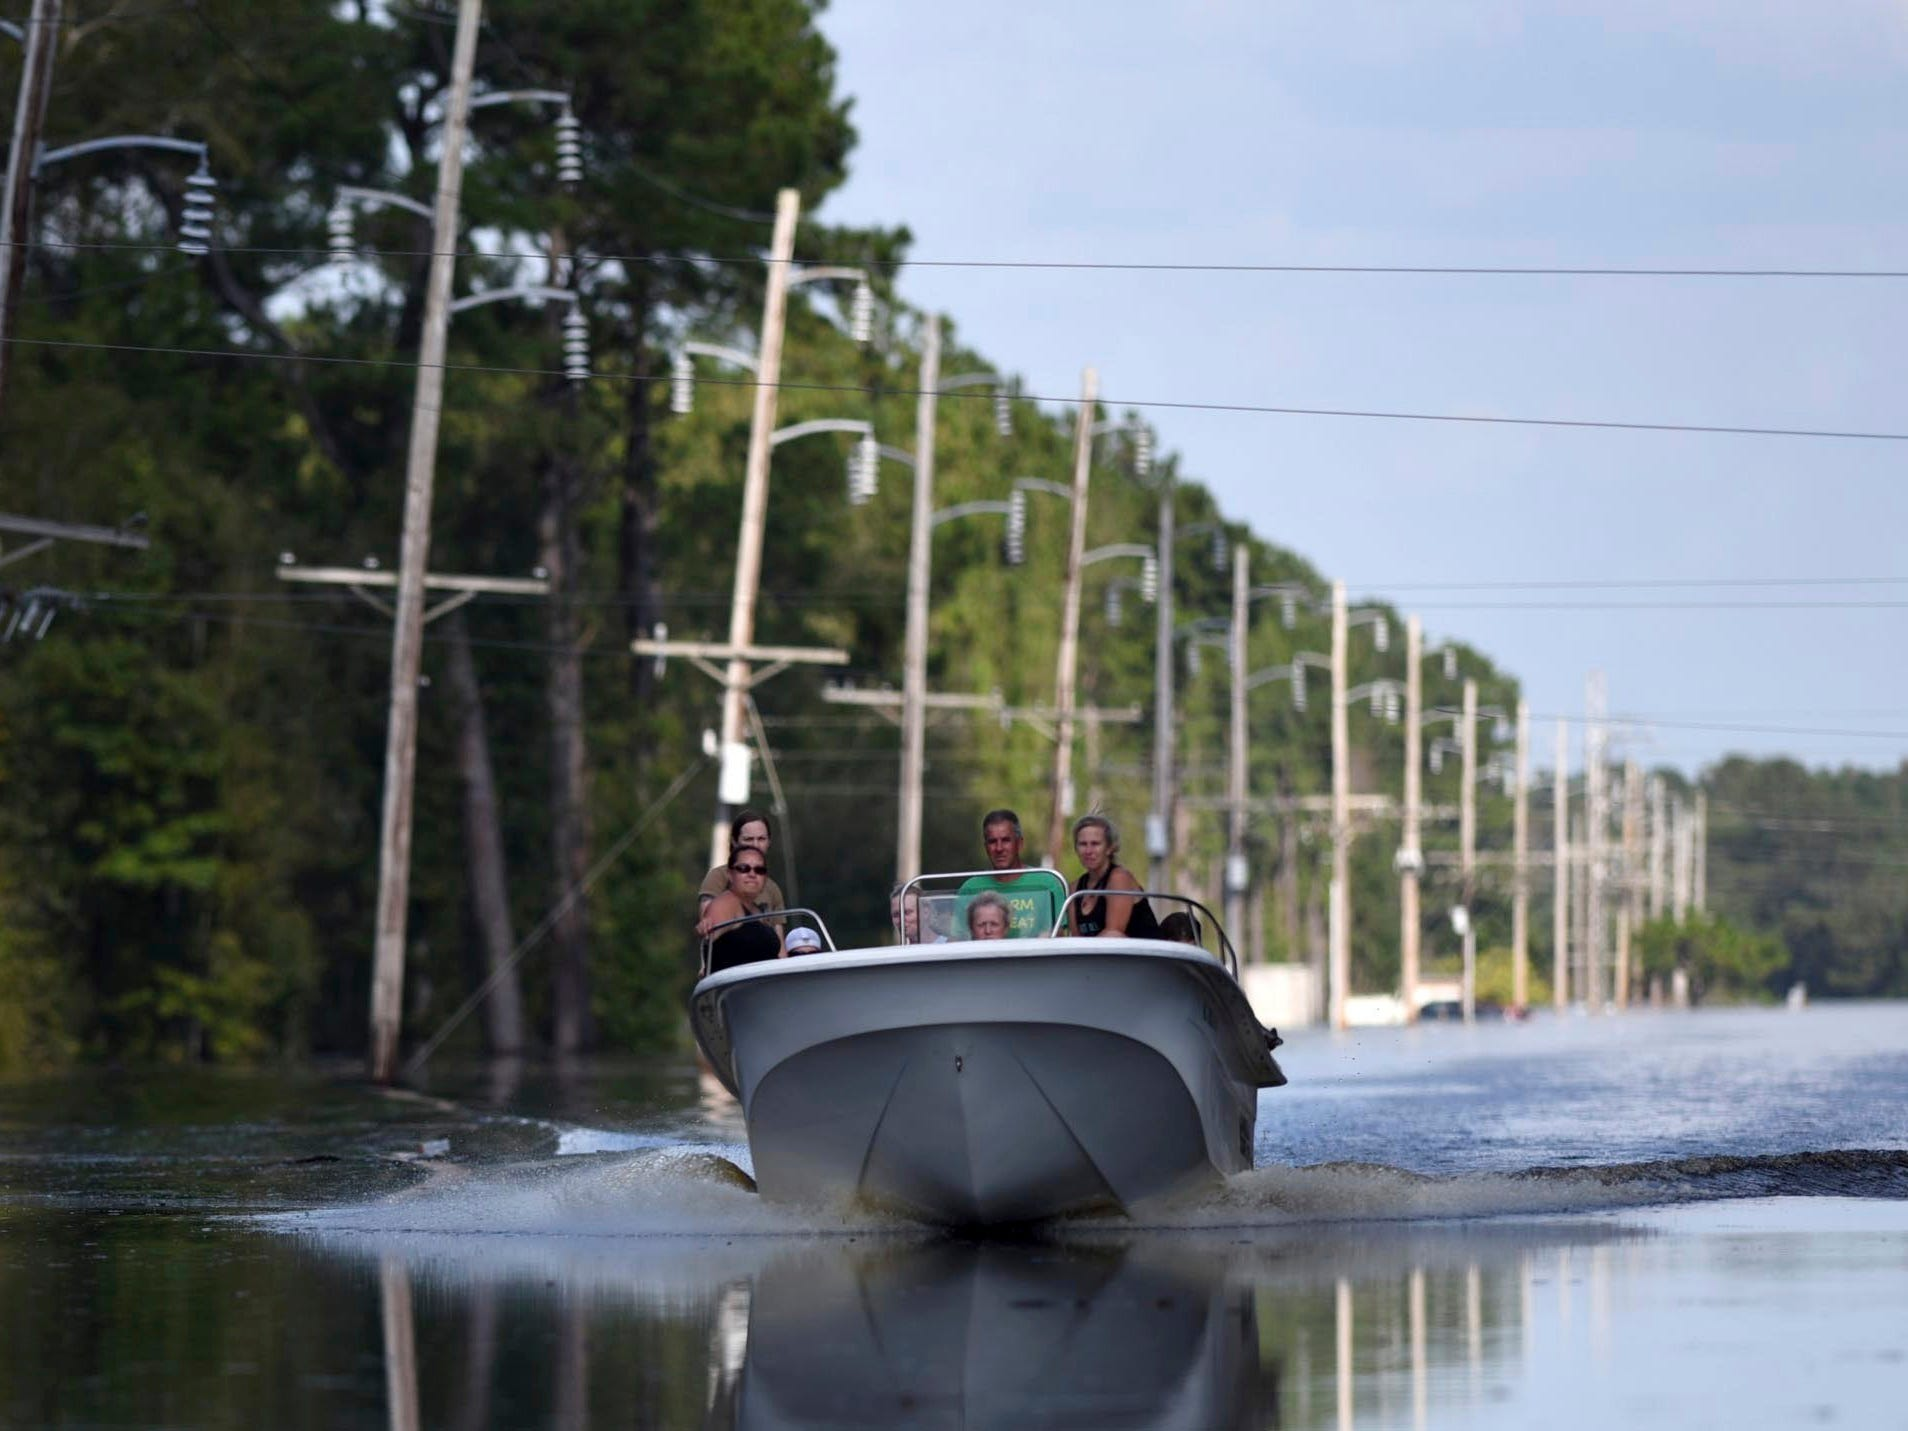 Area residents ride around neighborhoods flooded from the Northeast Cape Fear River in Burgaw, N.C. on Sept. 19, 2018.